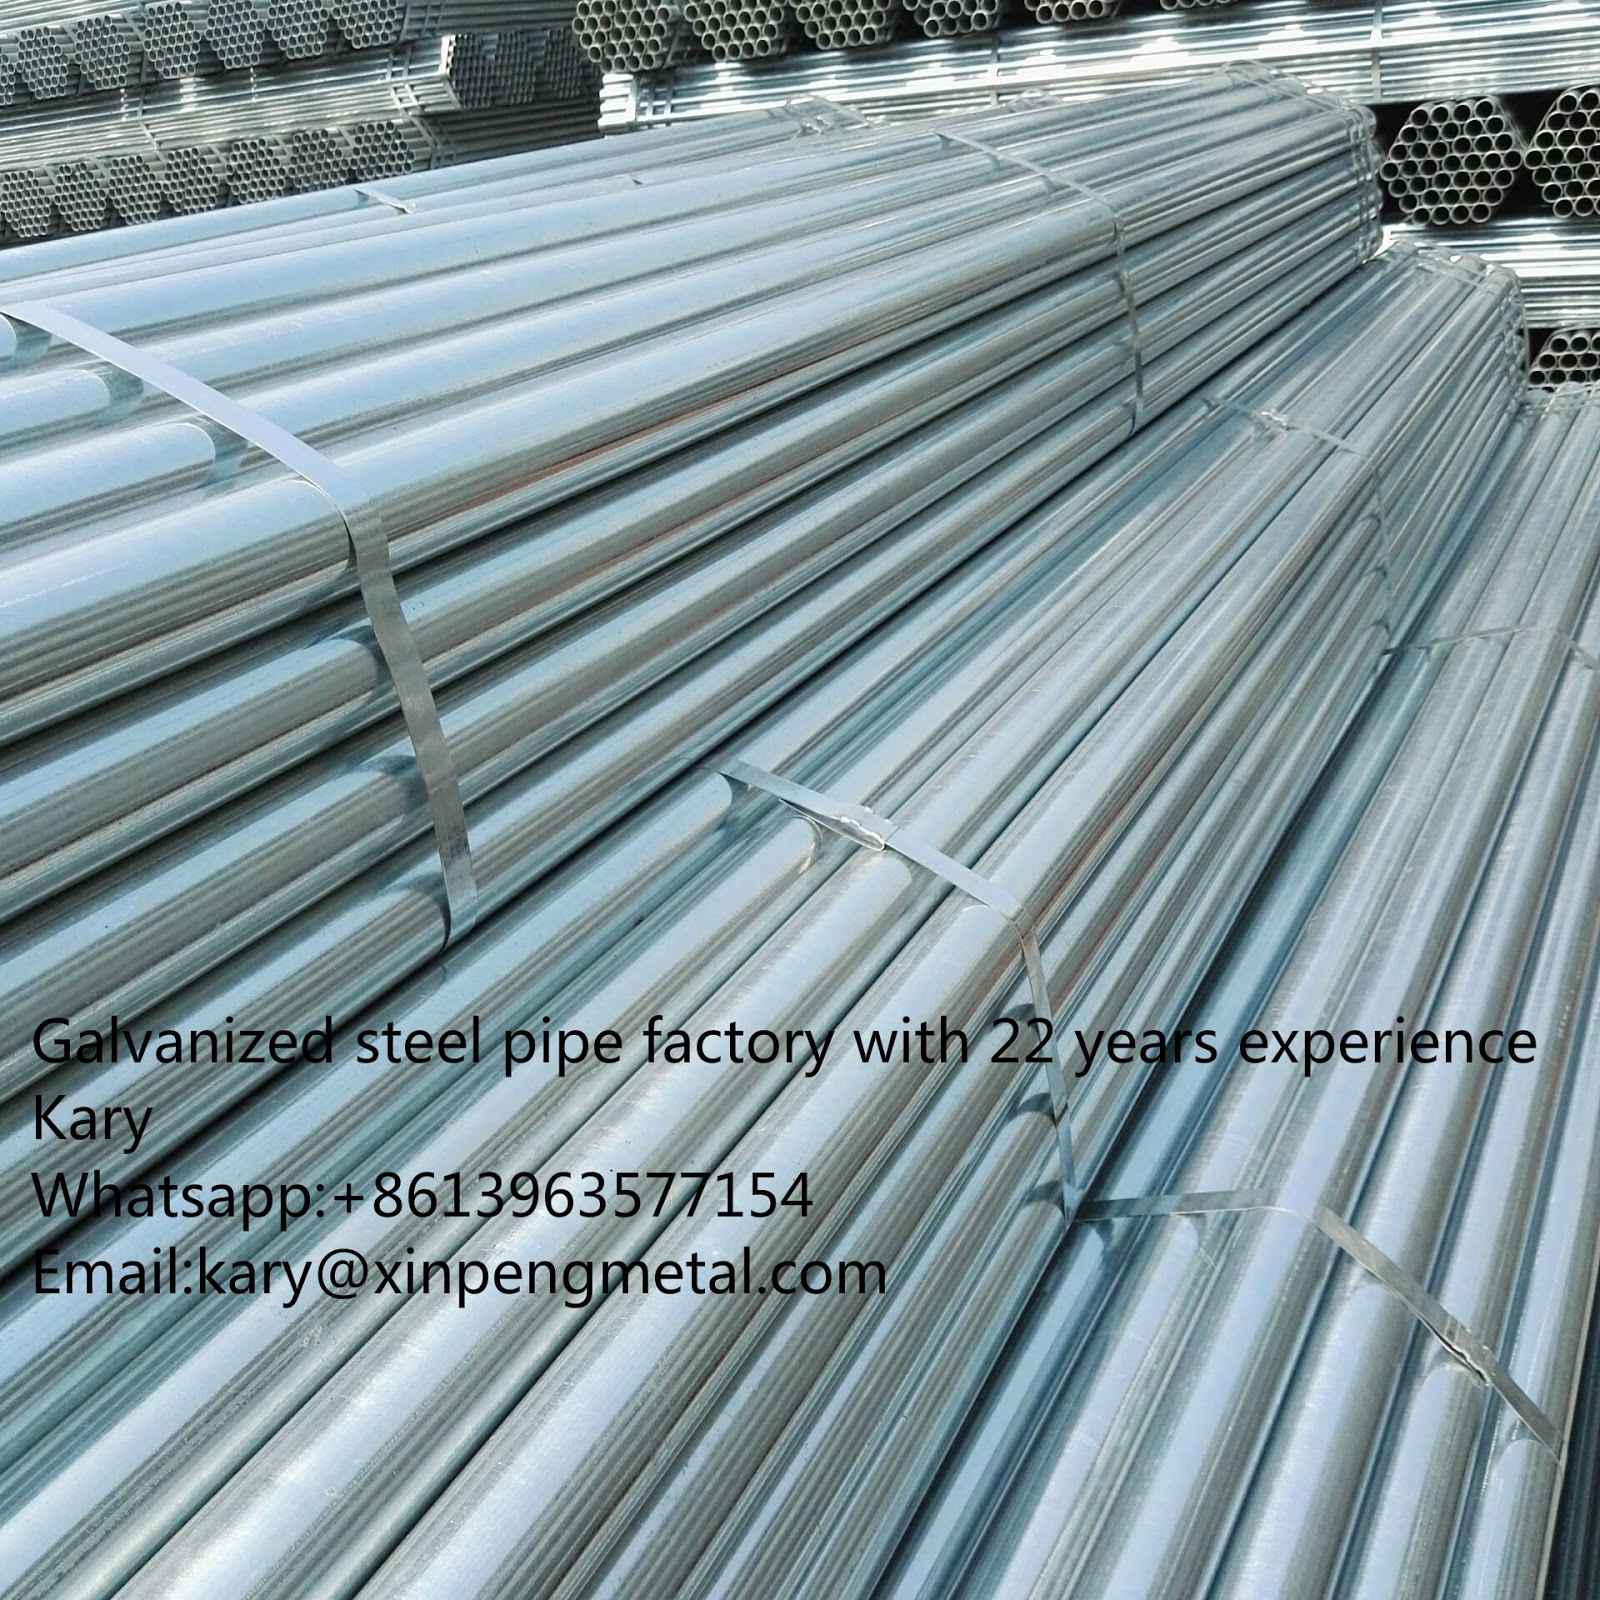 Seamless steel pipe supplier: International news attention: 9th in